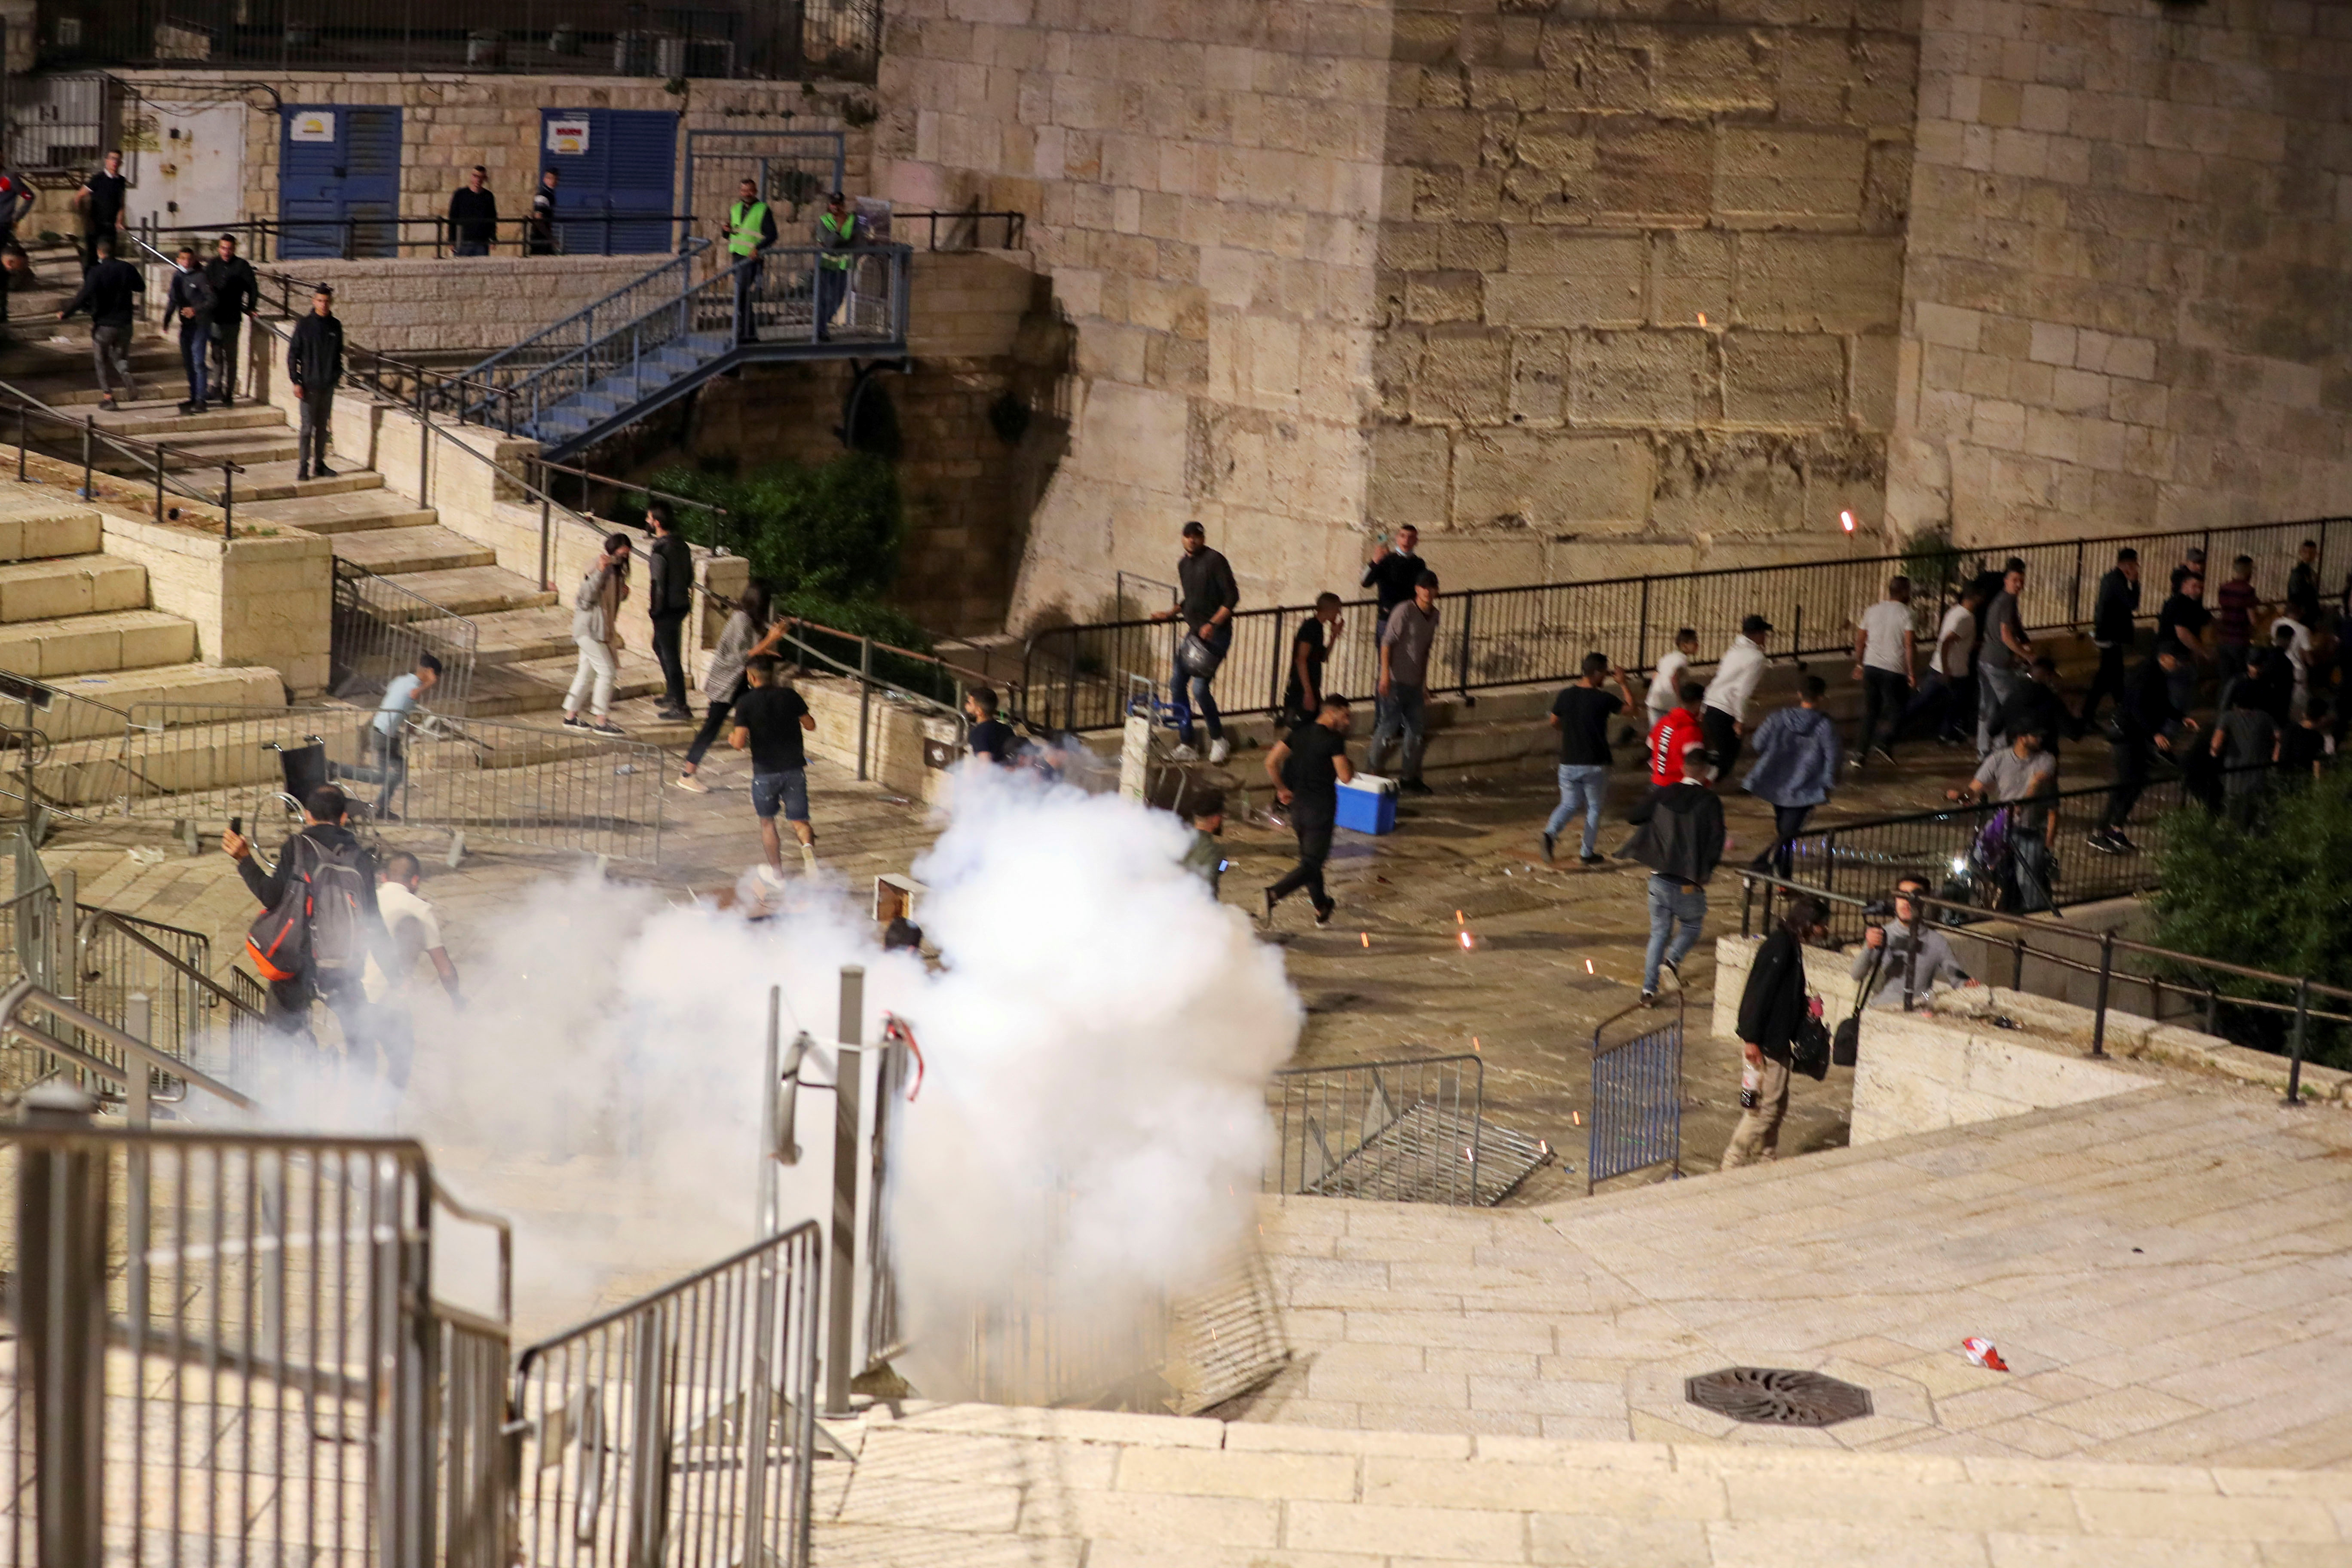 Palestinians run away as a stun grenade fired by Israeli police explodes during clashes at Damascus Gate just outside Jerusalem's Old City, on the Muslim holy fasting month of Ramadan April 17, 2021. Picture taken April 17, 2021. REUTERS/Ammar Awad